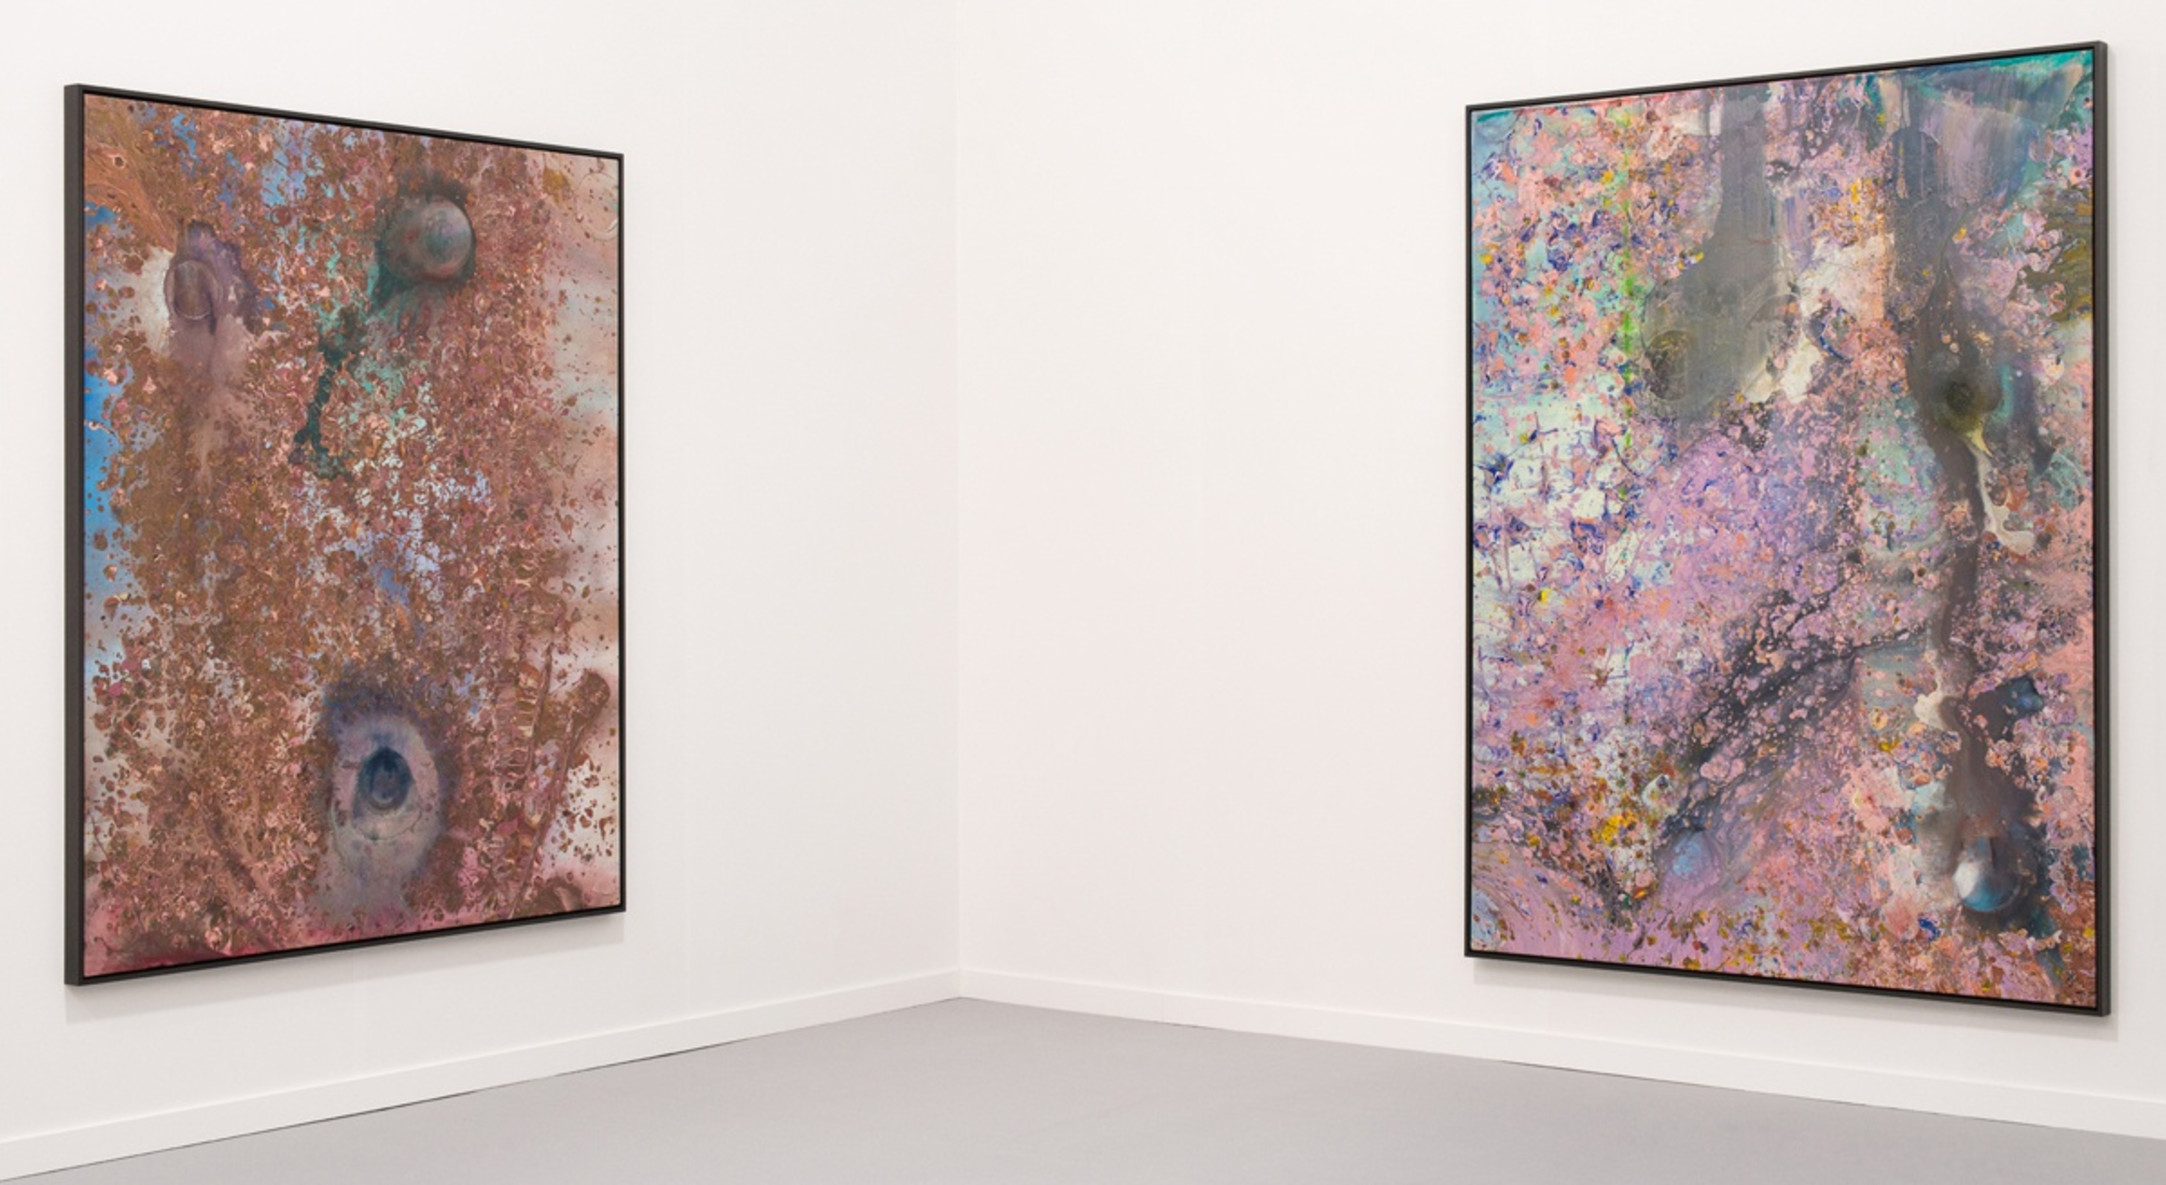 Installation view of Frank Bowling at Hales Gallery Booth at Frieze New York 2016